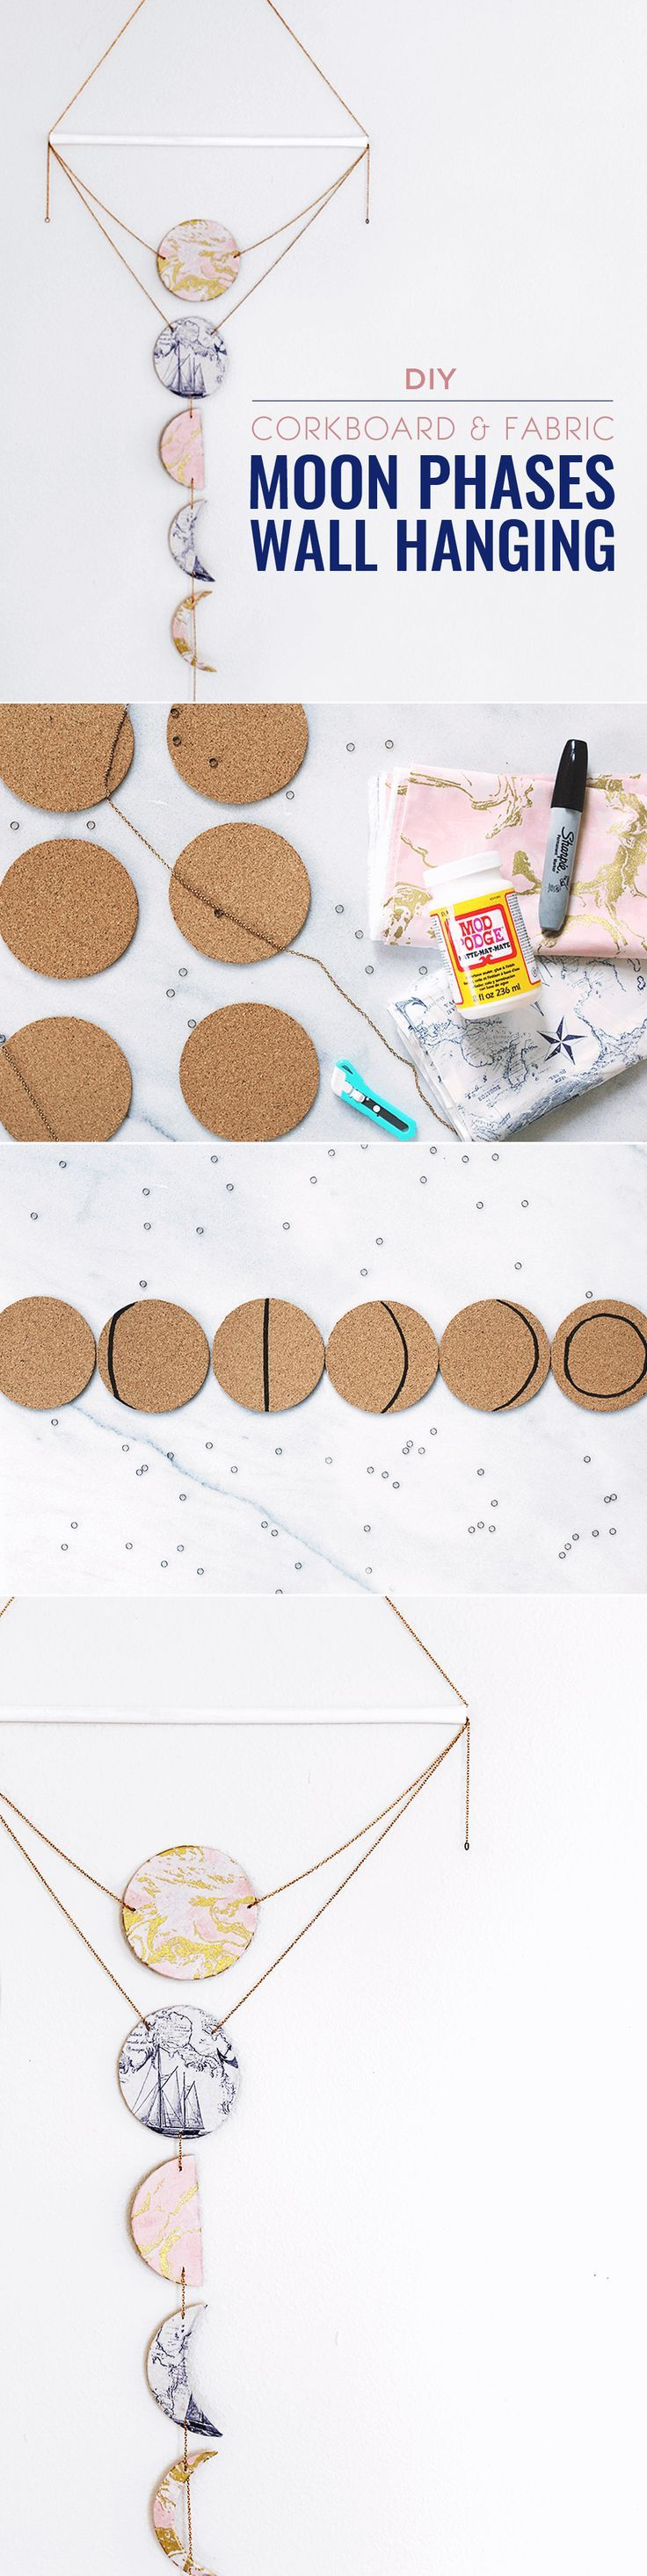 I absolutely love this new spin on the moon phases wall hanging. It looks like something you would buy! Definitely going to have to try this!